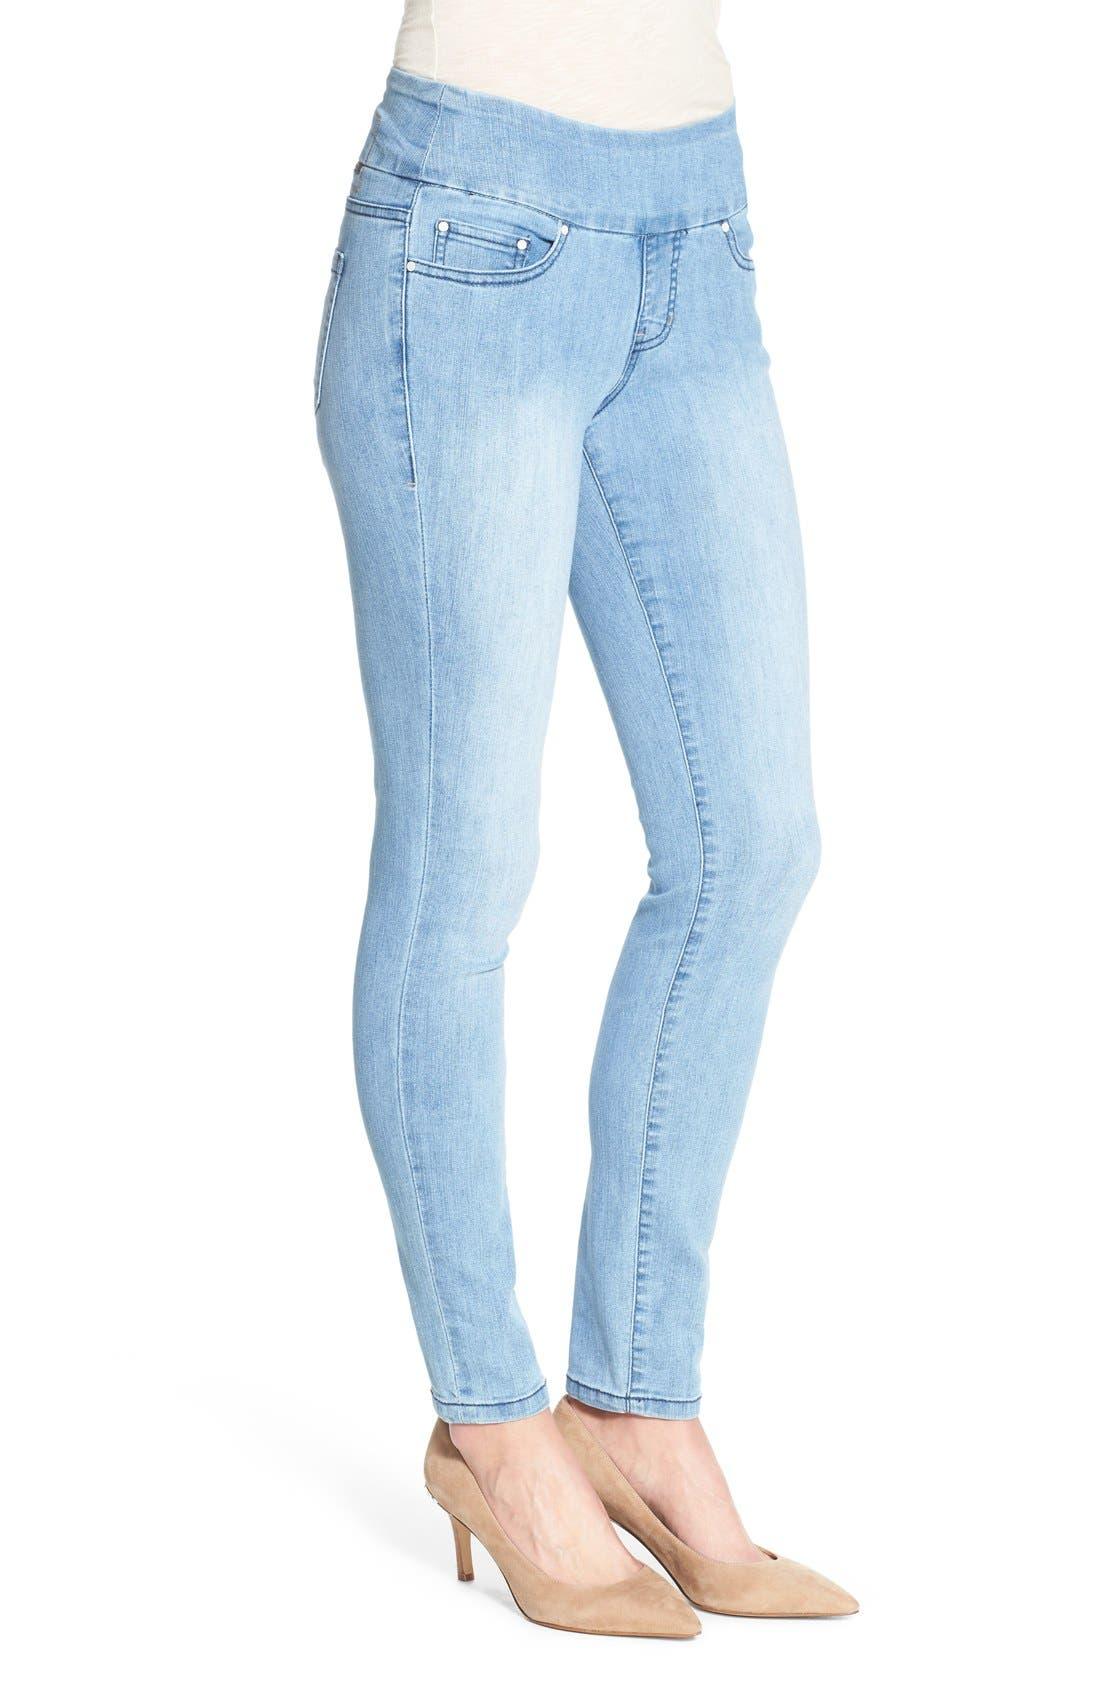 Alternate Image 3  - Jag Jeans 'Nora' Pull-On Stretch Skinny Jeans (Southern Sky)